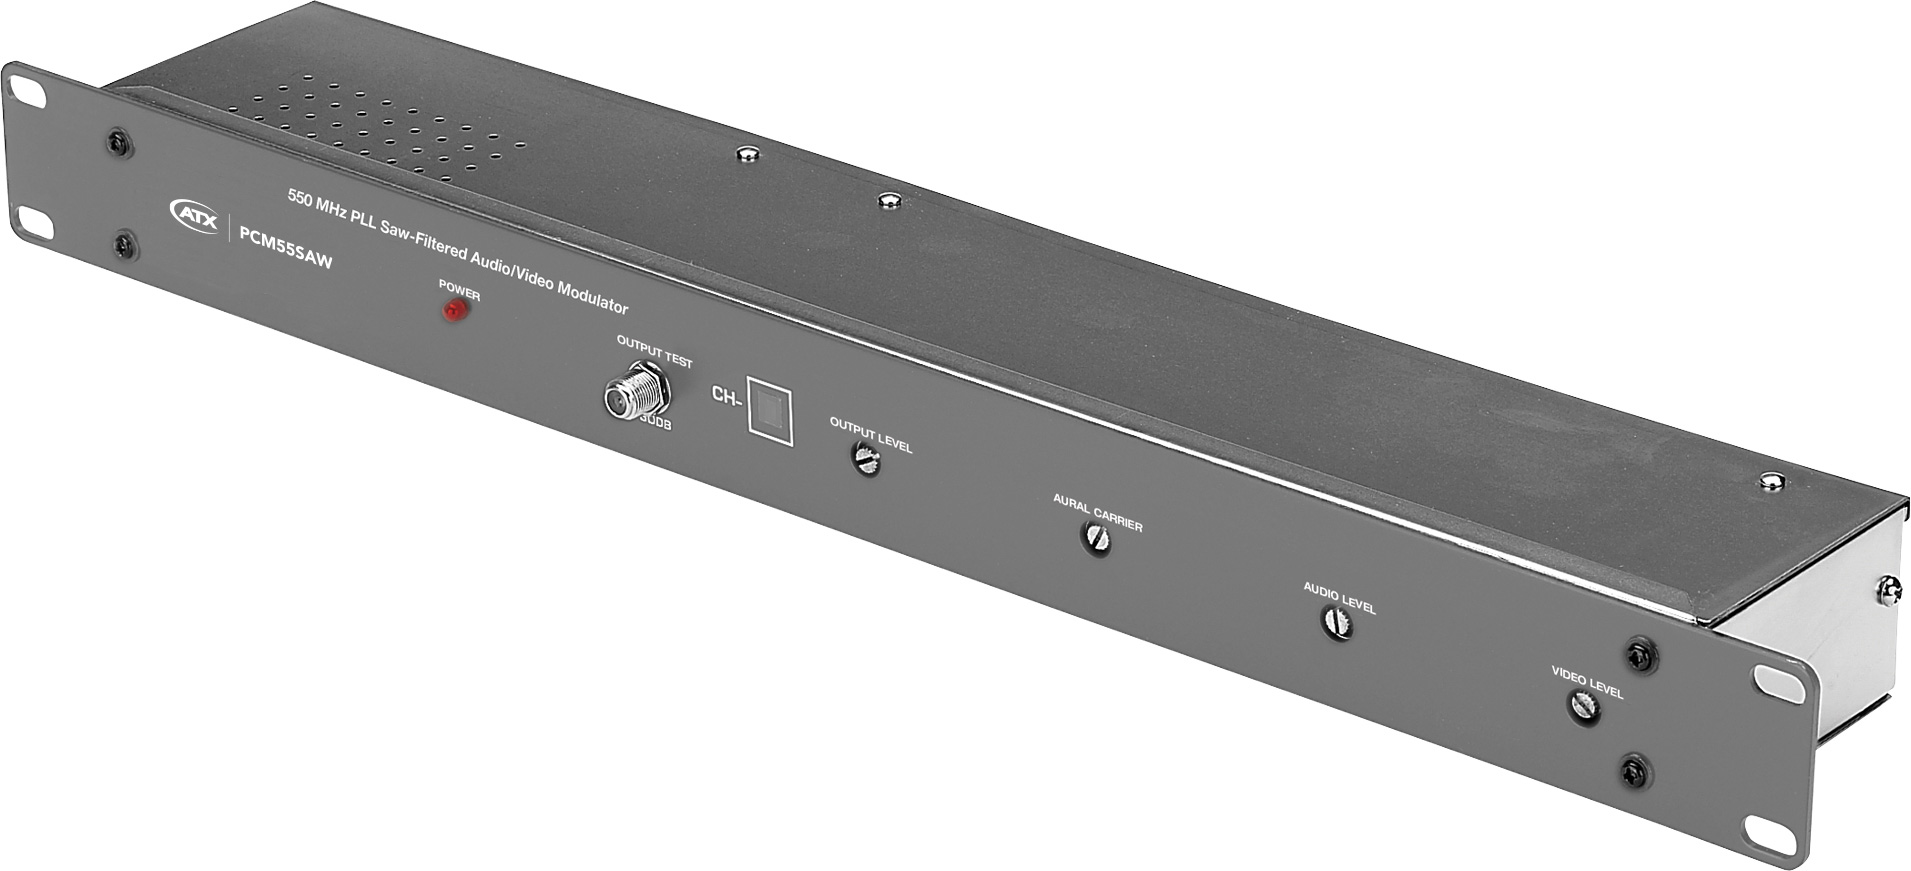 1 Channel Crystal A/V Modulator - Channel HH PM-PCM55SAW-HH